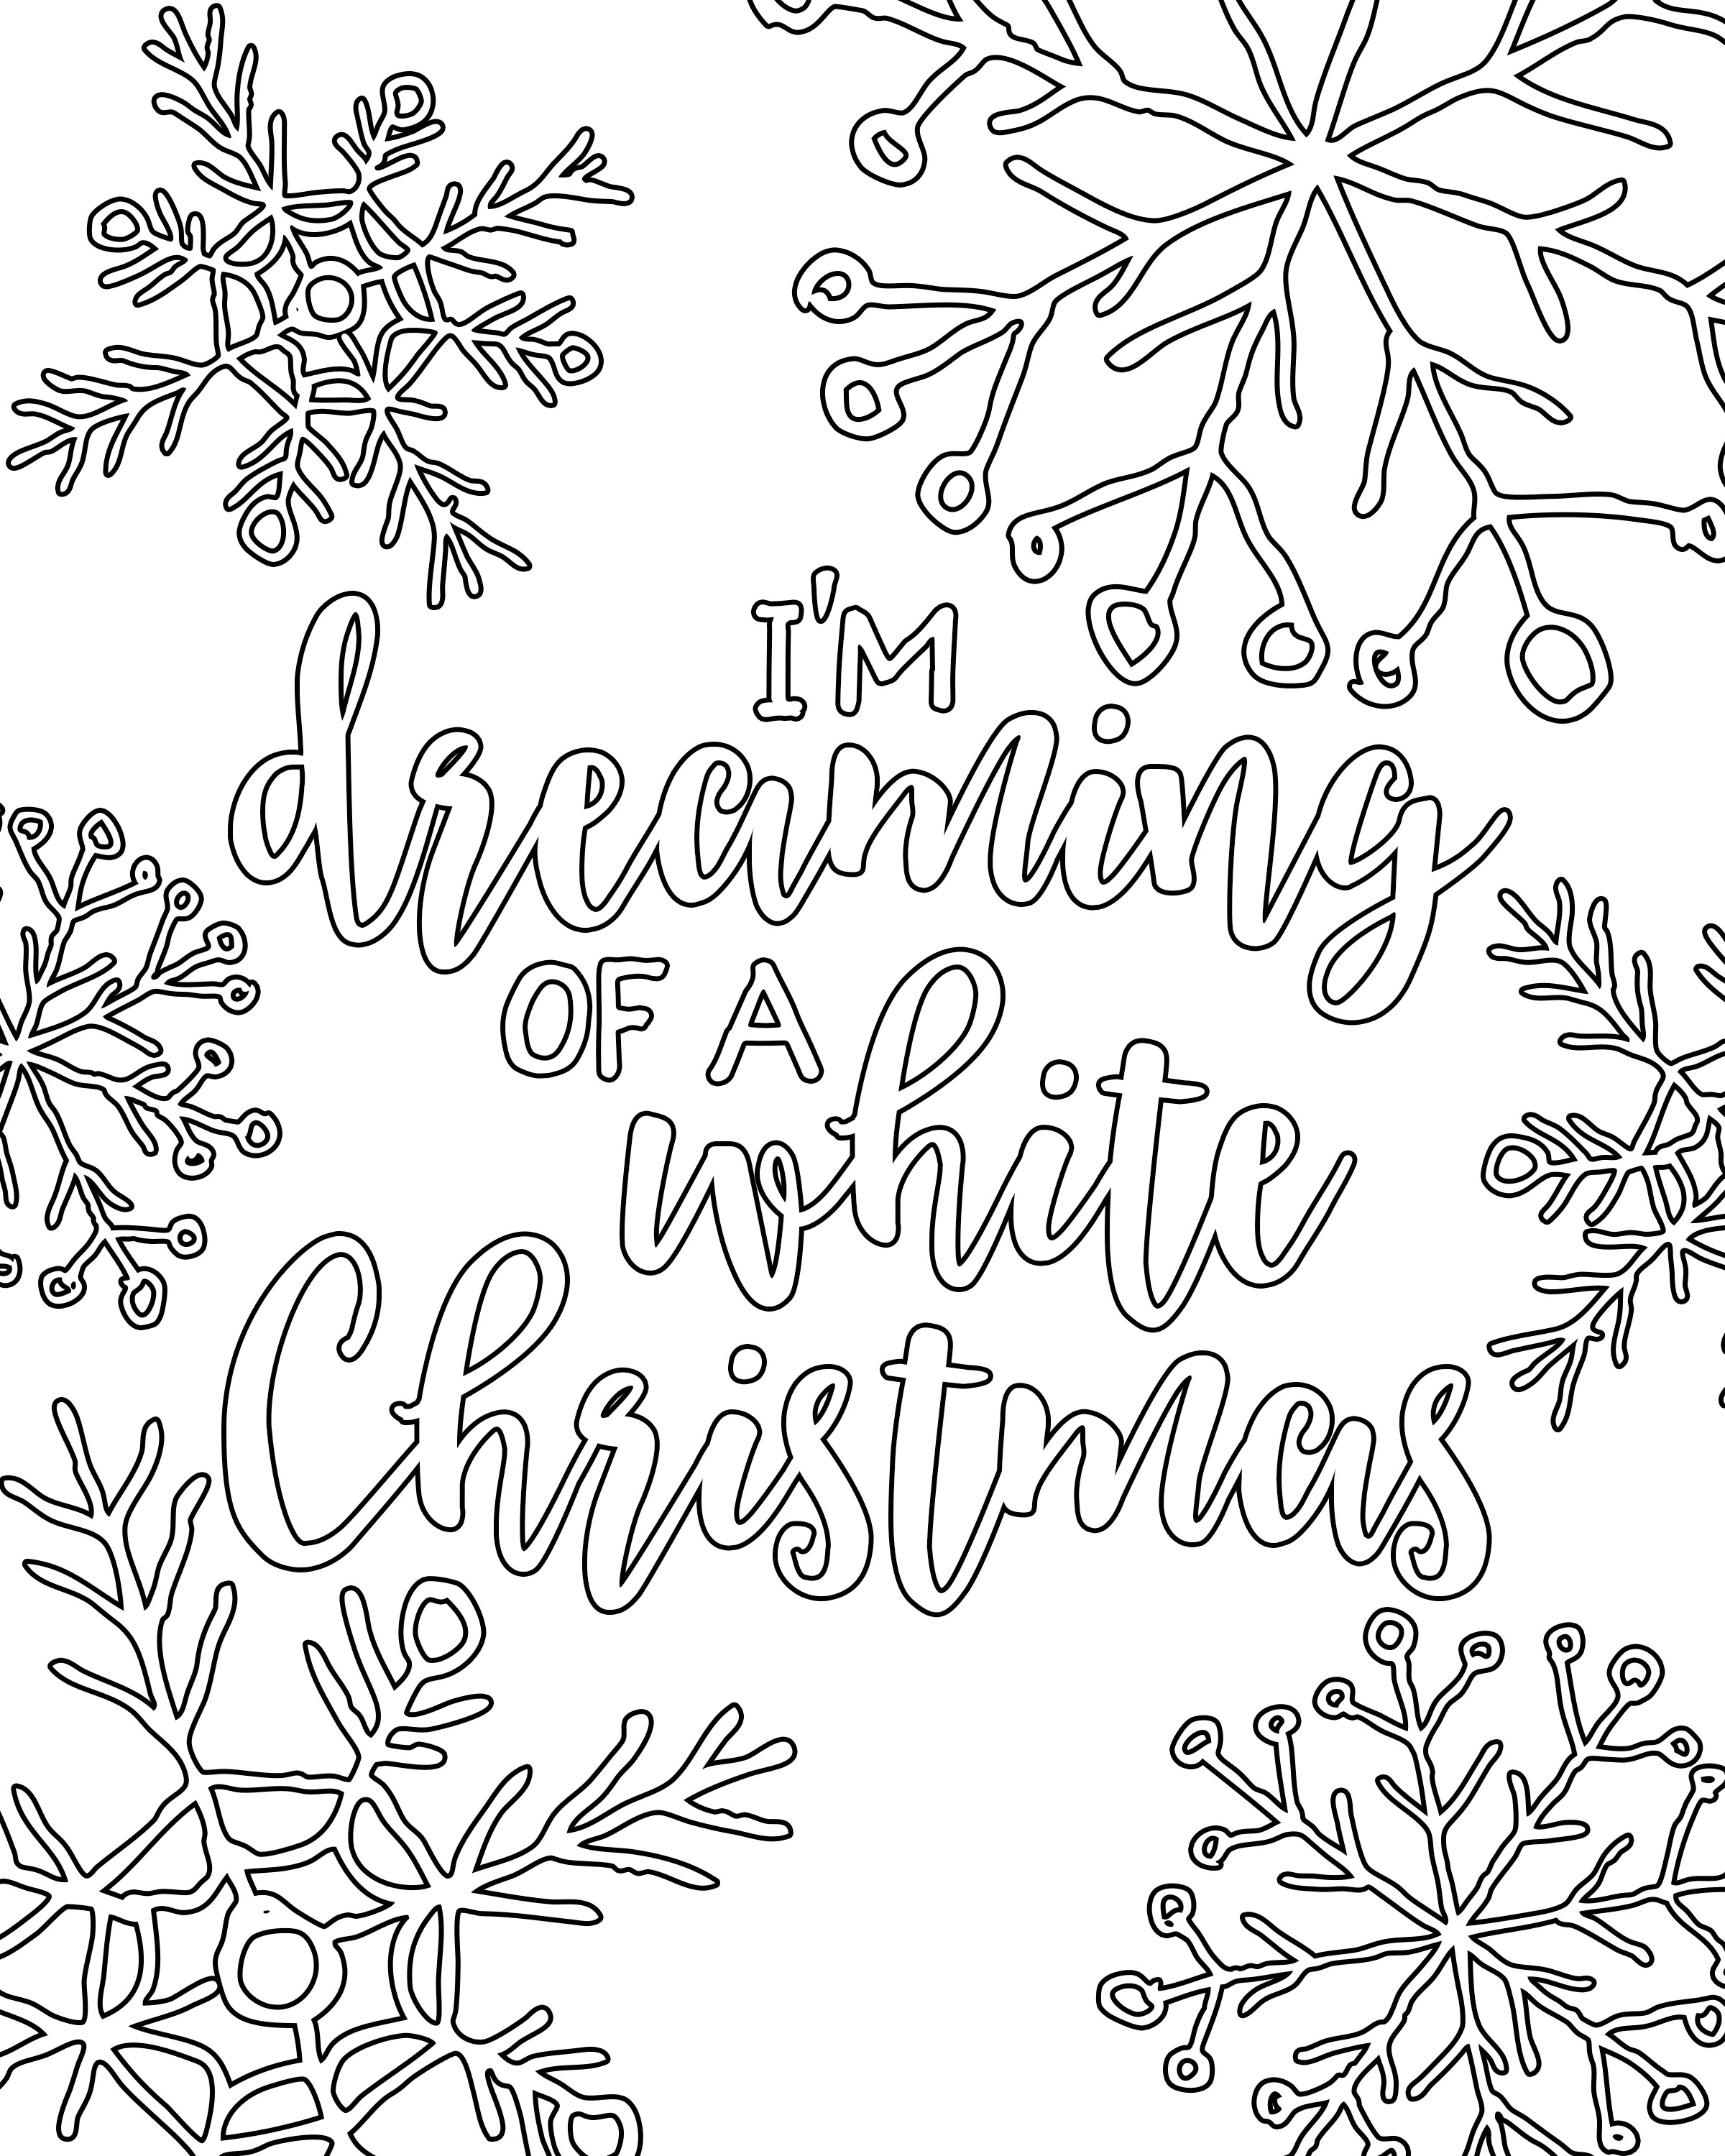 Christmas Coloring Pages To Print For Adults With Free Printable White Adult Our